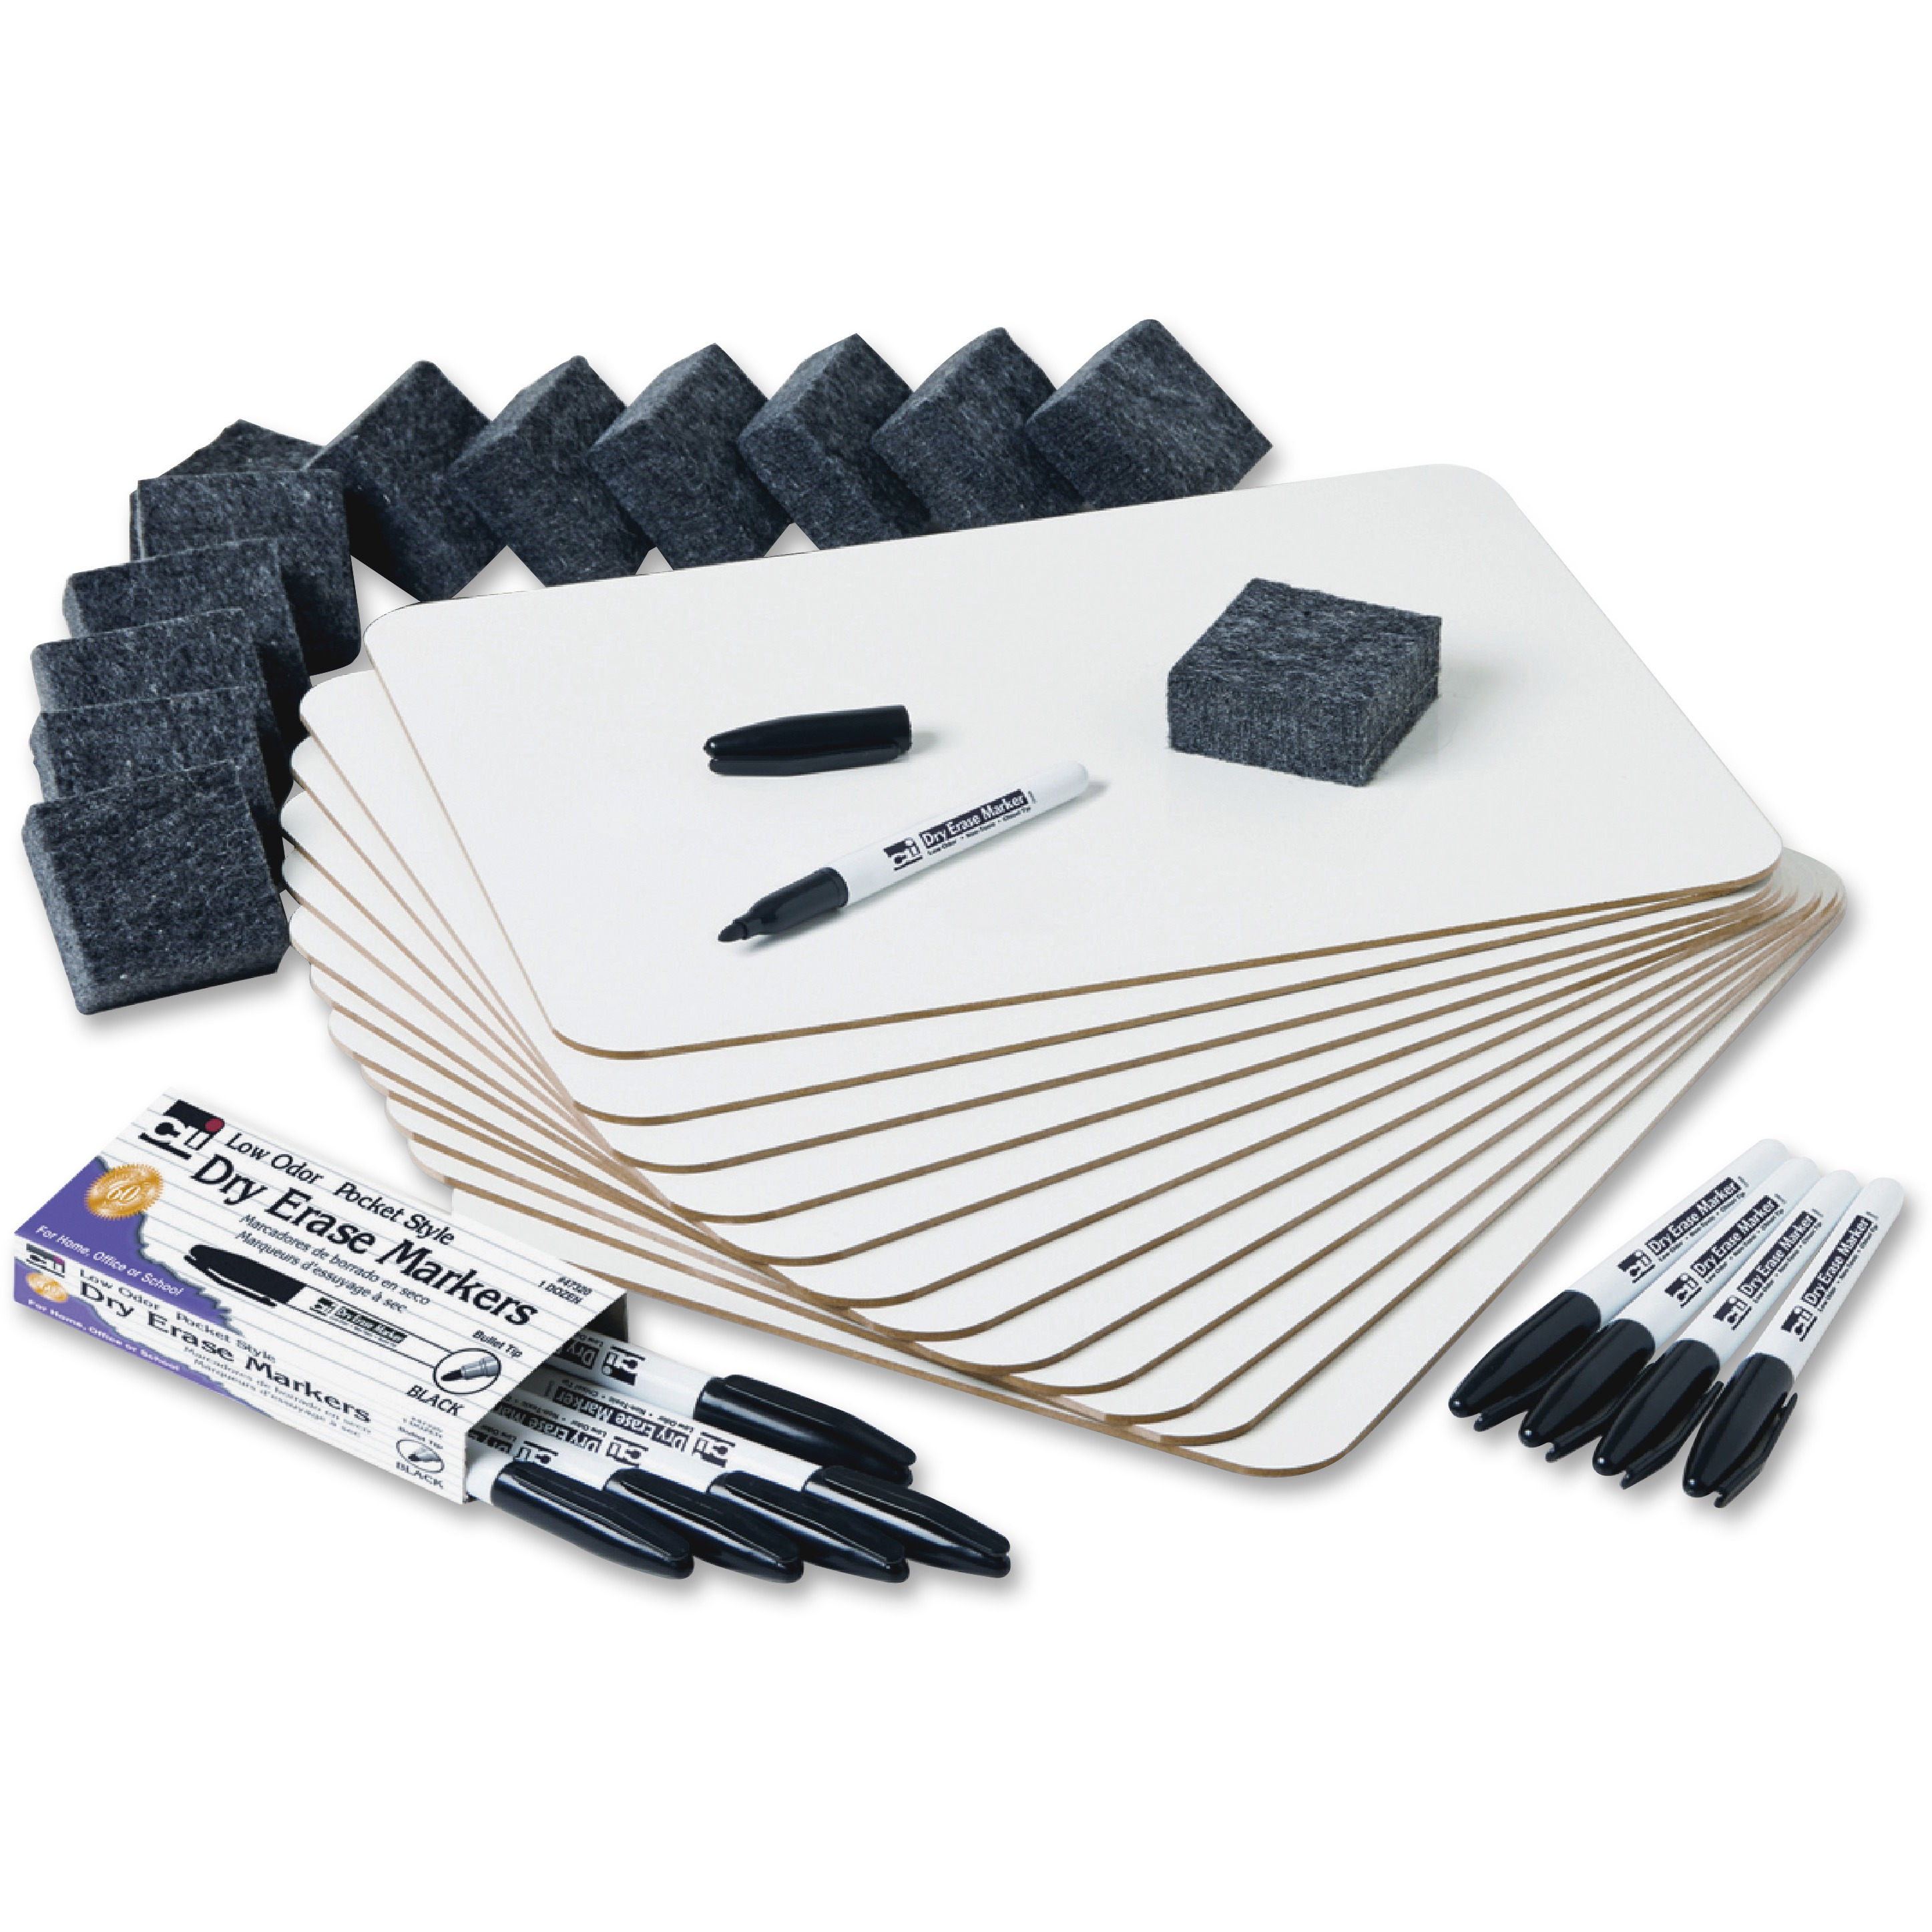 "Charles Leonard Dry Erase Lapboard Class Pack includes 12 Each: One Sided- Plain, White Dry Erase Boards, 2x2"" Felt Erasers & Low Odor, Black AP Certified Dry Erase Markers 36 Pieces/Box (35036)"